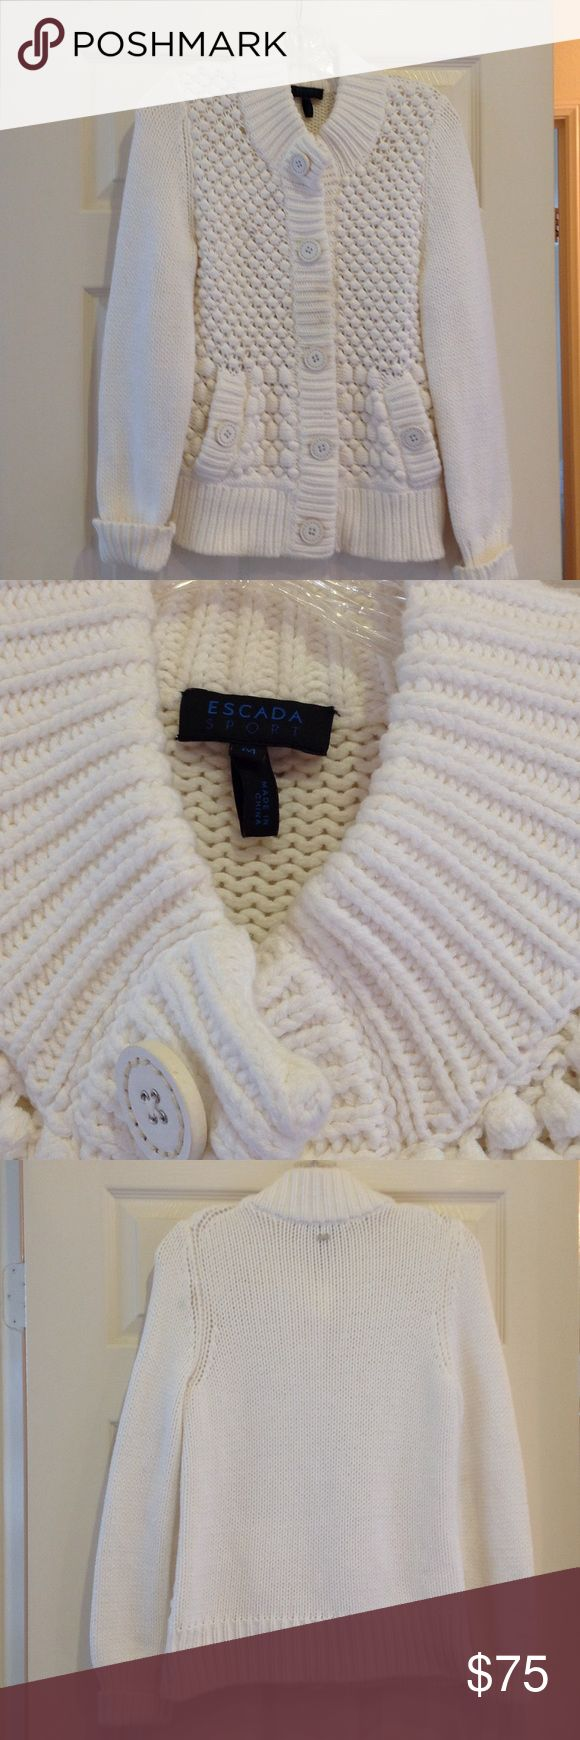 Escada Sport women's white sweater. Size M. Escada Sport, women's white chunky knit sweater. Large snap closure in front and at pockets with patent leather buttons on top. 89% cotton; 11% polyester. Size M. Escada Sport Sweaters Cardigans